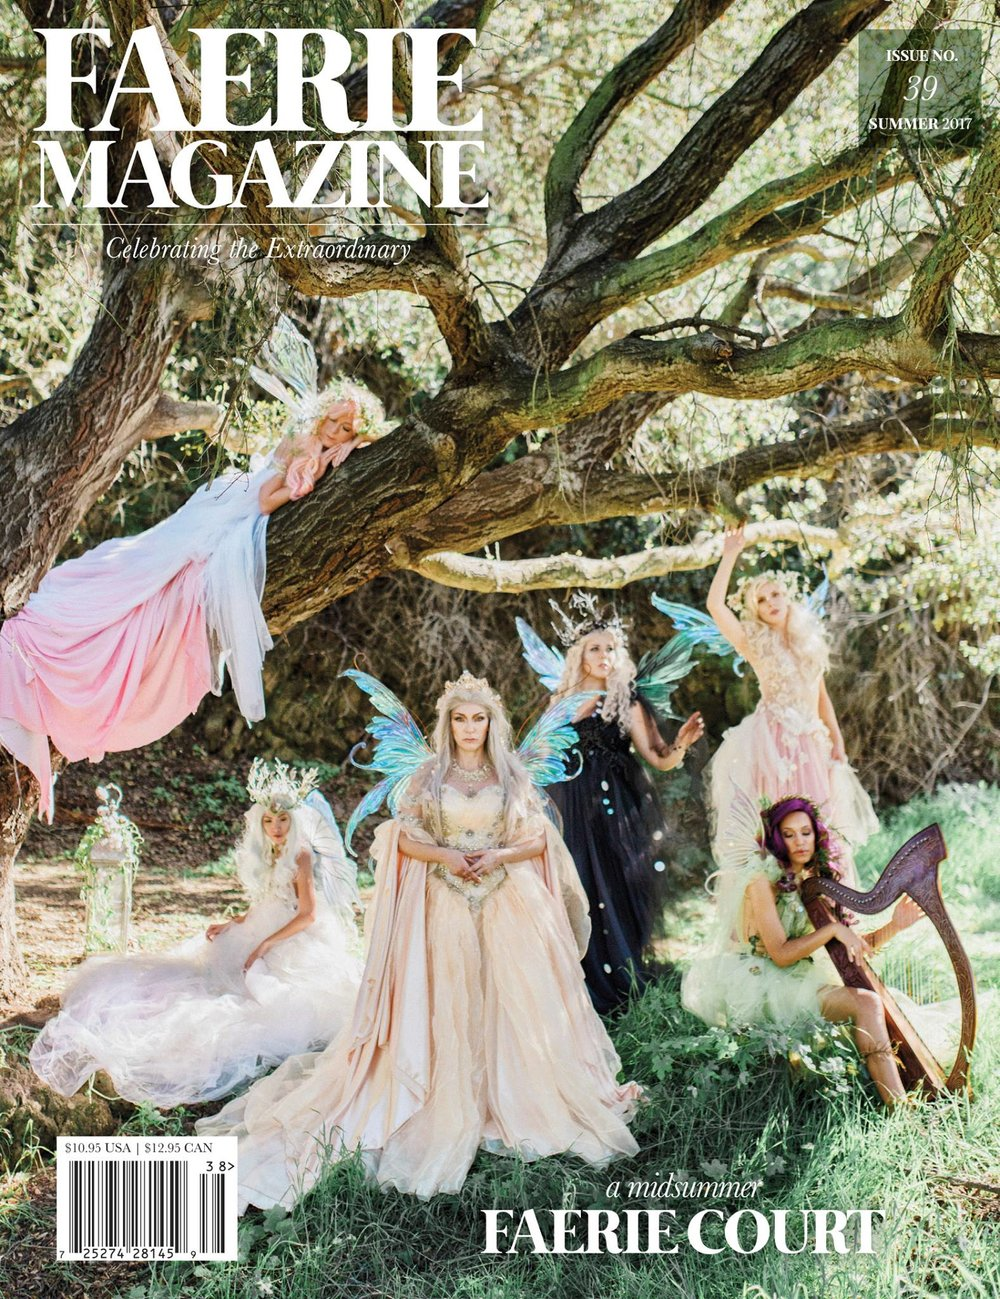 Faerie Magazine Cover, Summer Issue